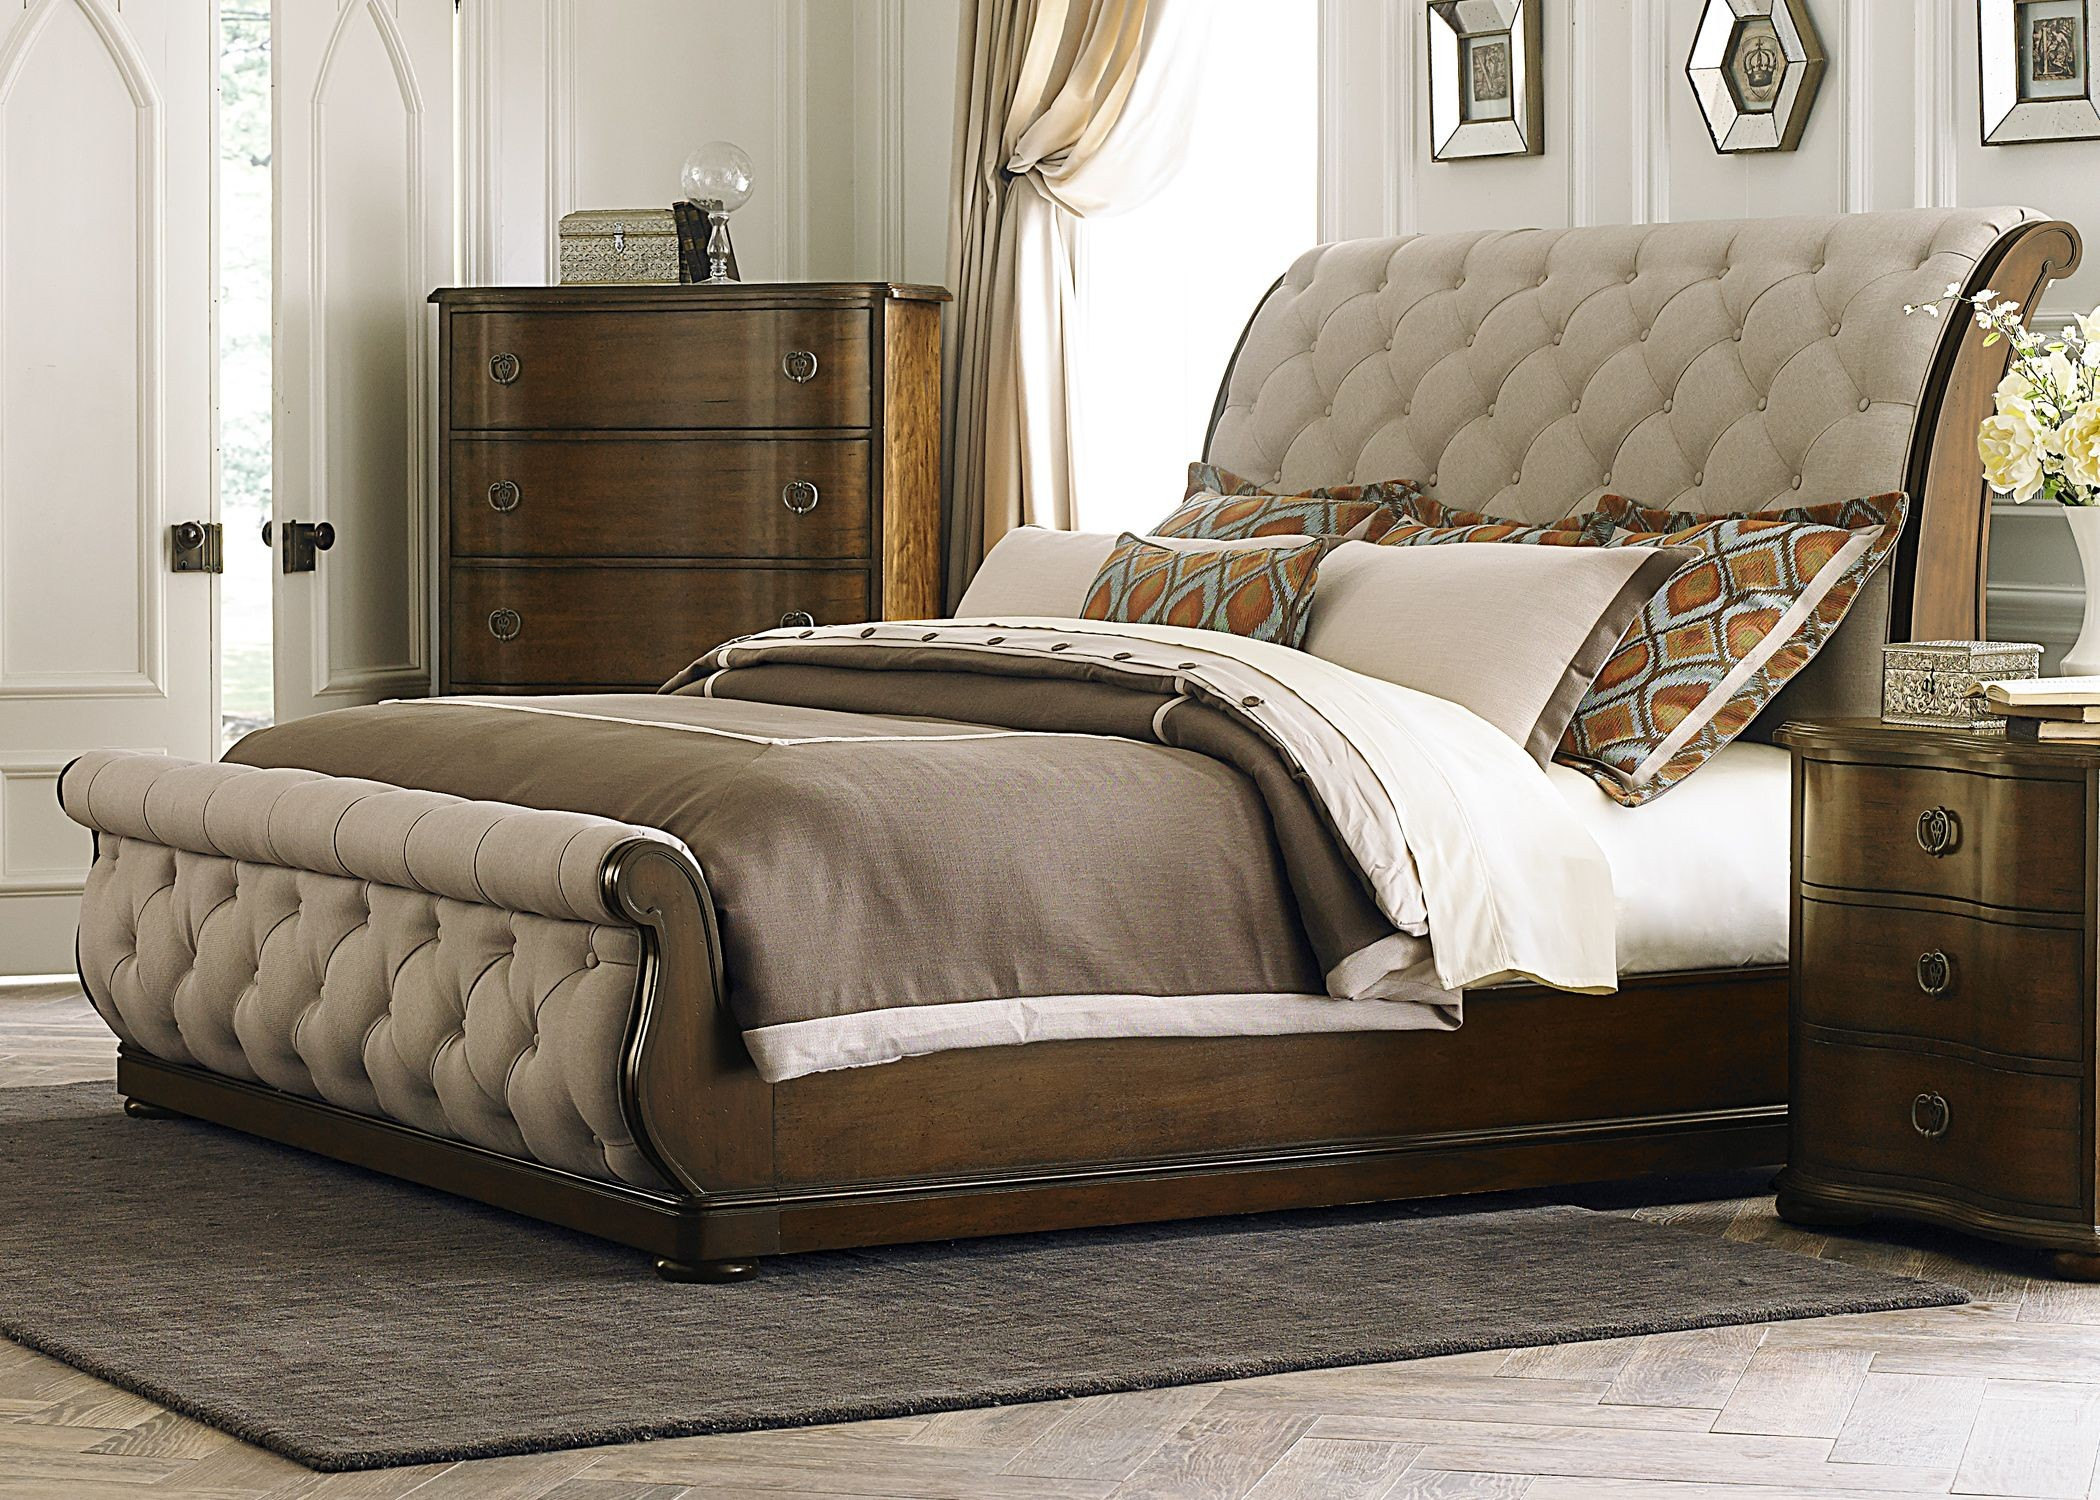 Cotswold King Upholstered Sleigh Bed From Liberty 545 Br